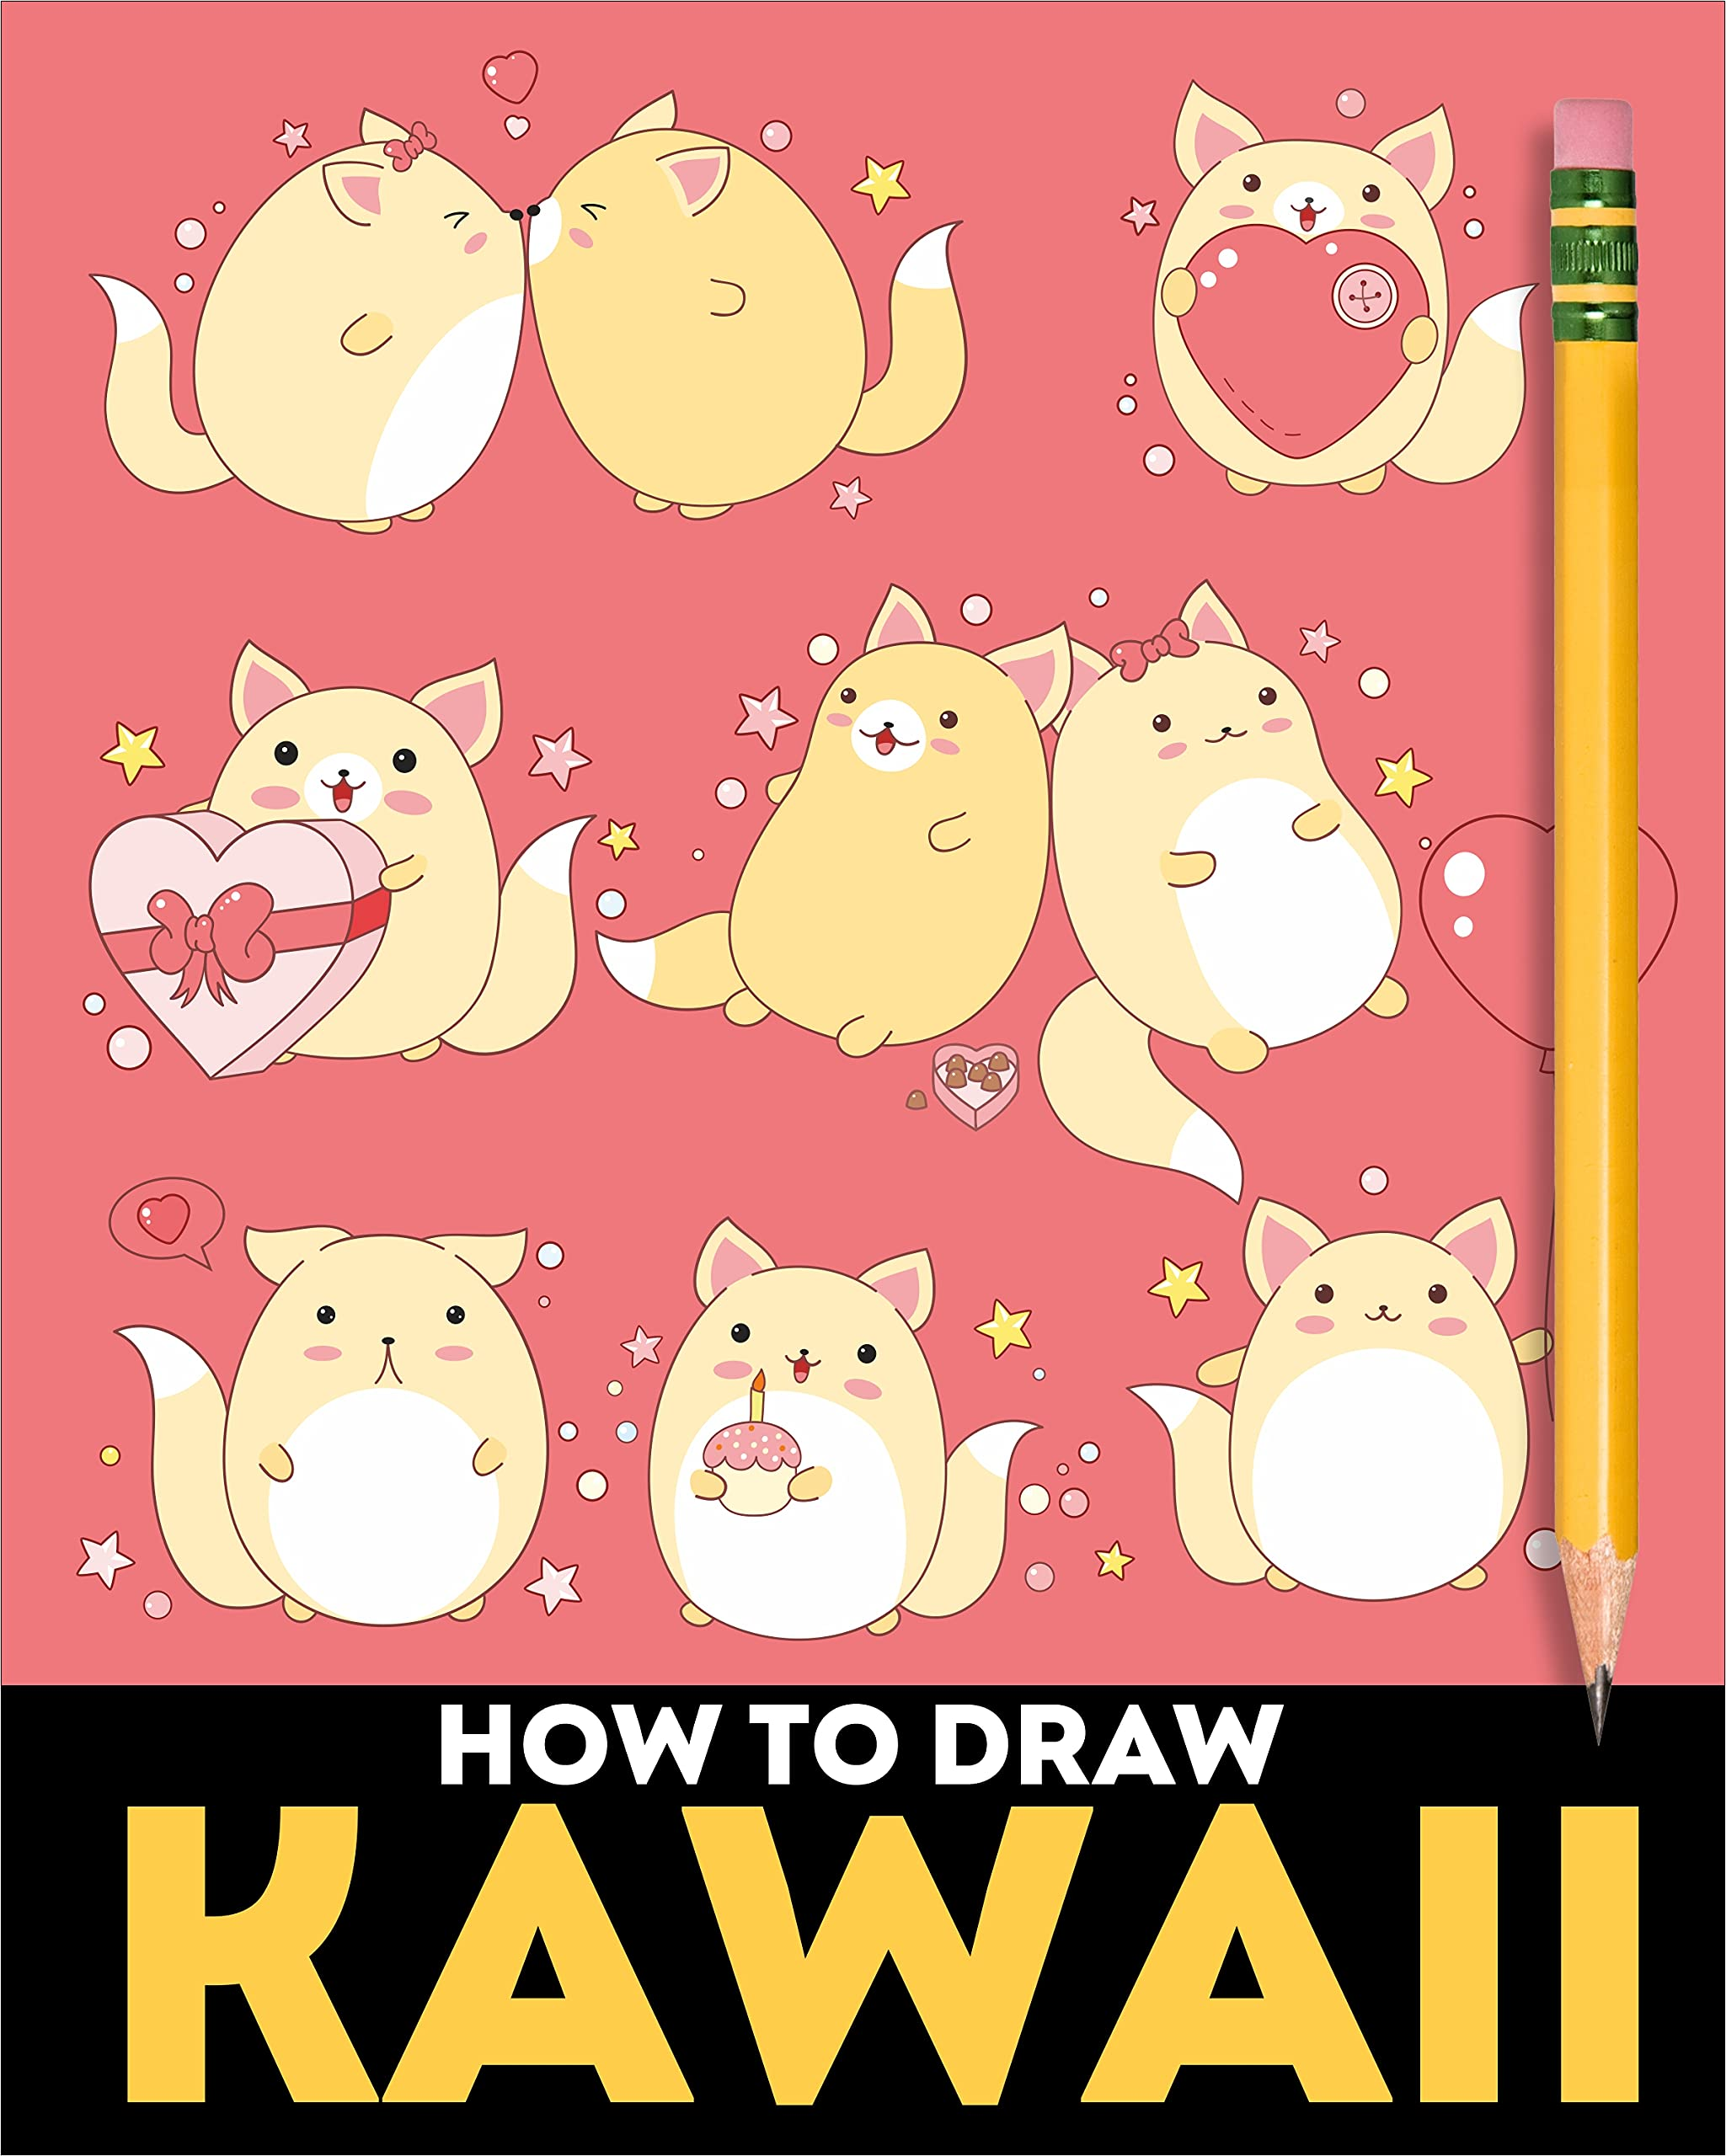 How to Draw Kawaii Doodle Cuties: Kawaii Drawing Book for Kids and Adults | A Simple Step by Step Guide for Kawaii Lovers | How to Draw Cute Stuff Easily | Learn to Draw Cute Artwork Around the World